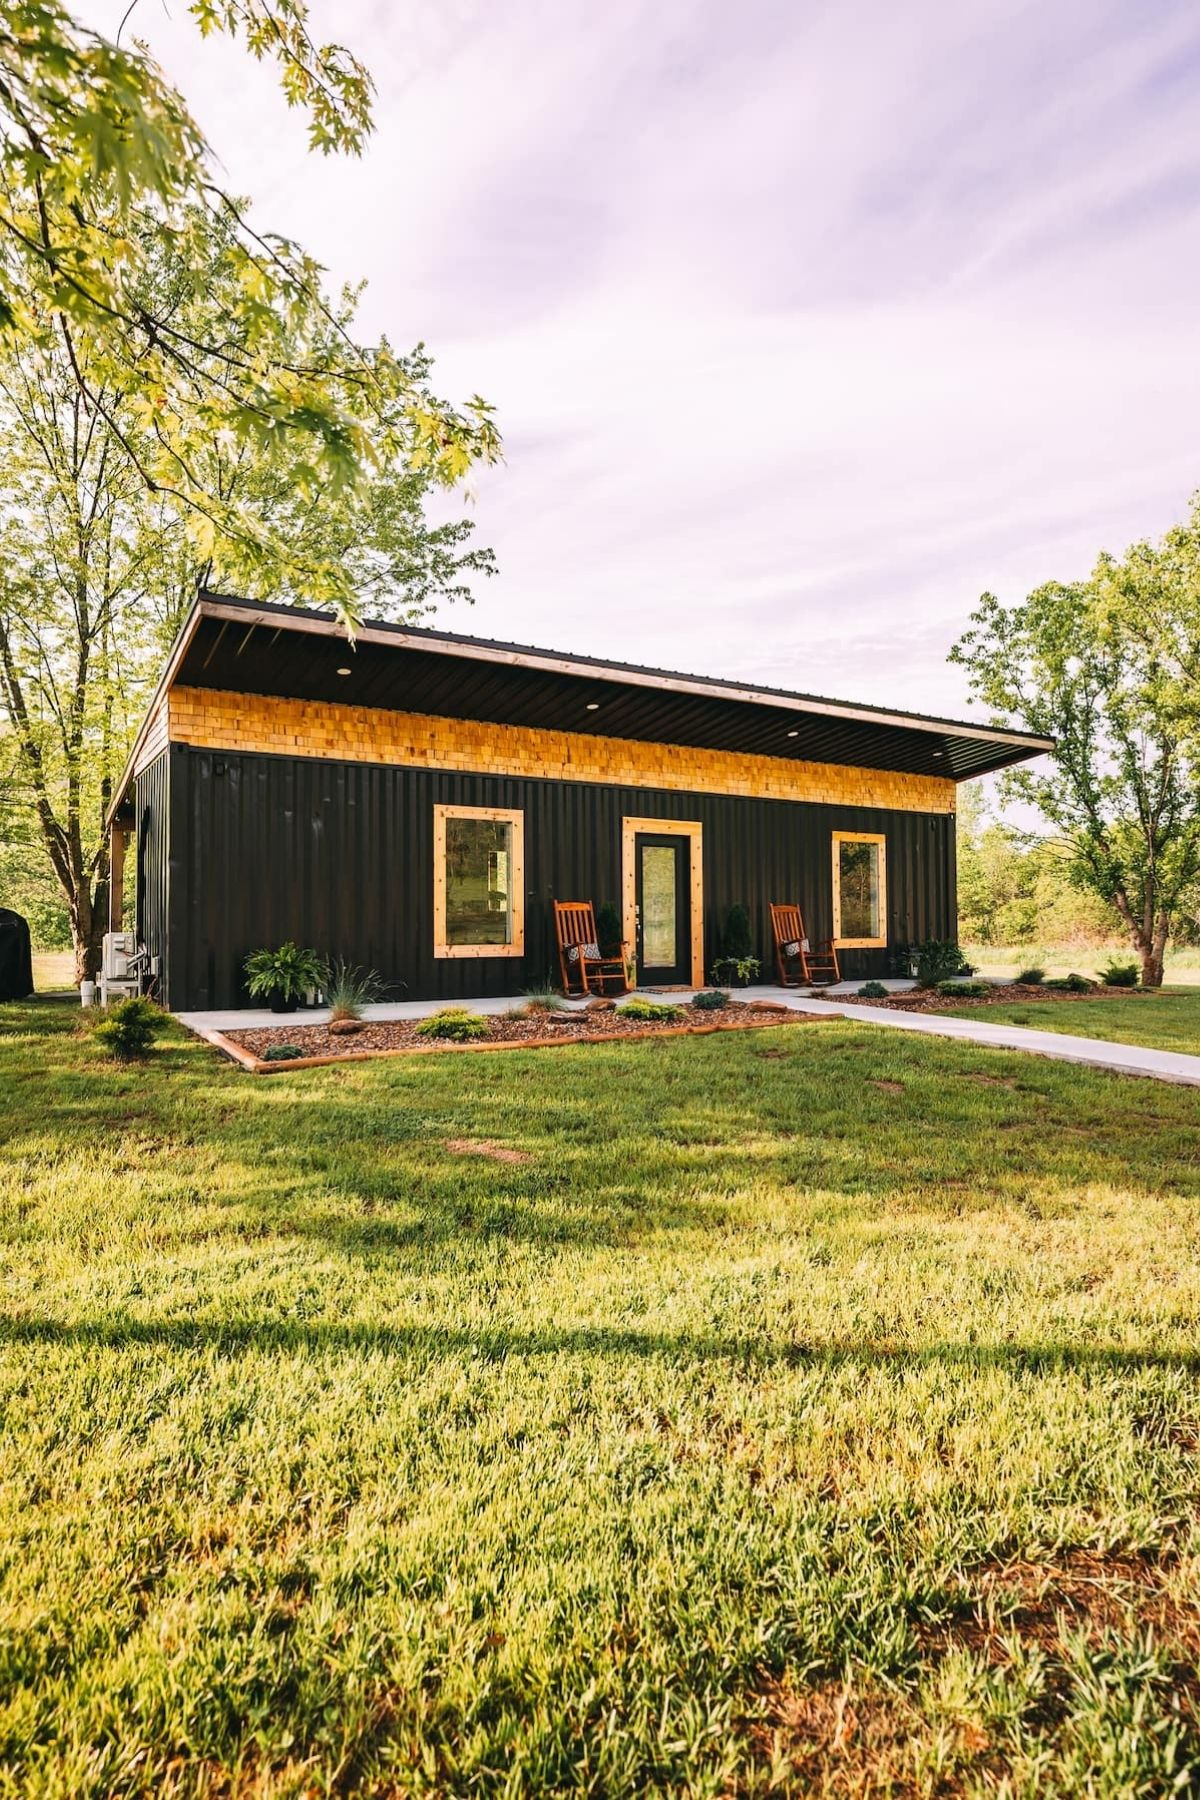 Black and wood tiny home on lot with trees in background